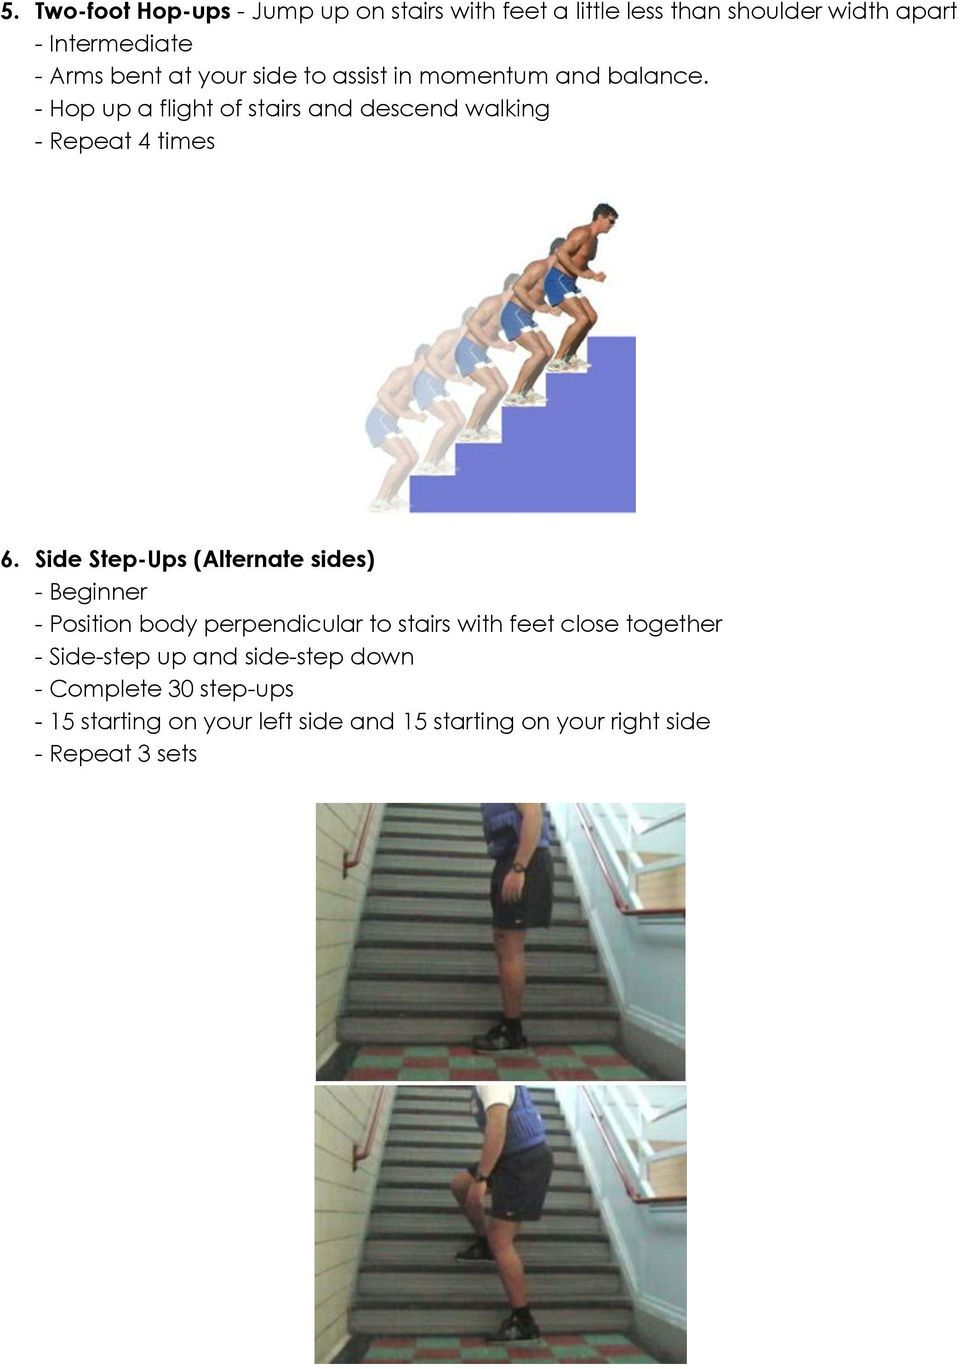 Side Step-Ups (Alternate sides) - Beginner - Position body perpendicular to stairs with feet close together - Side-step